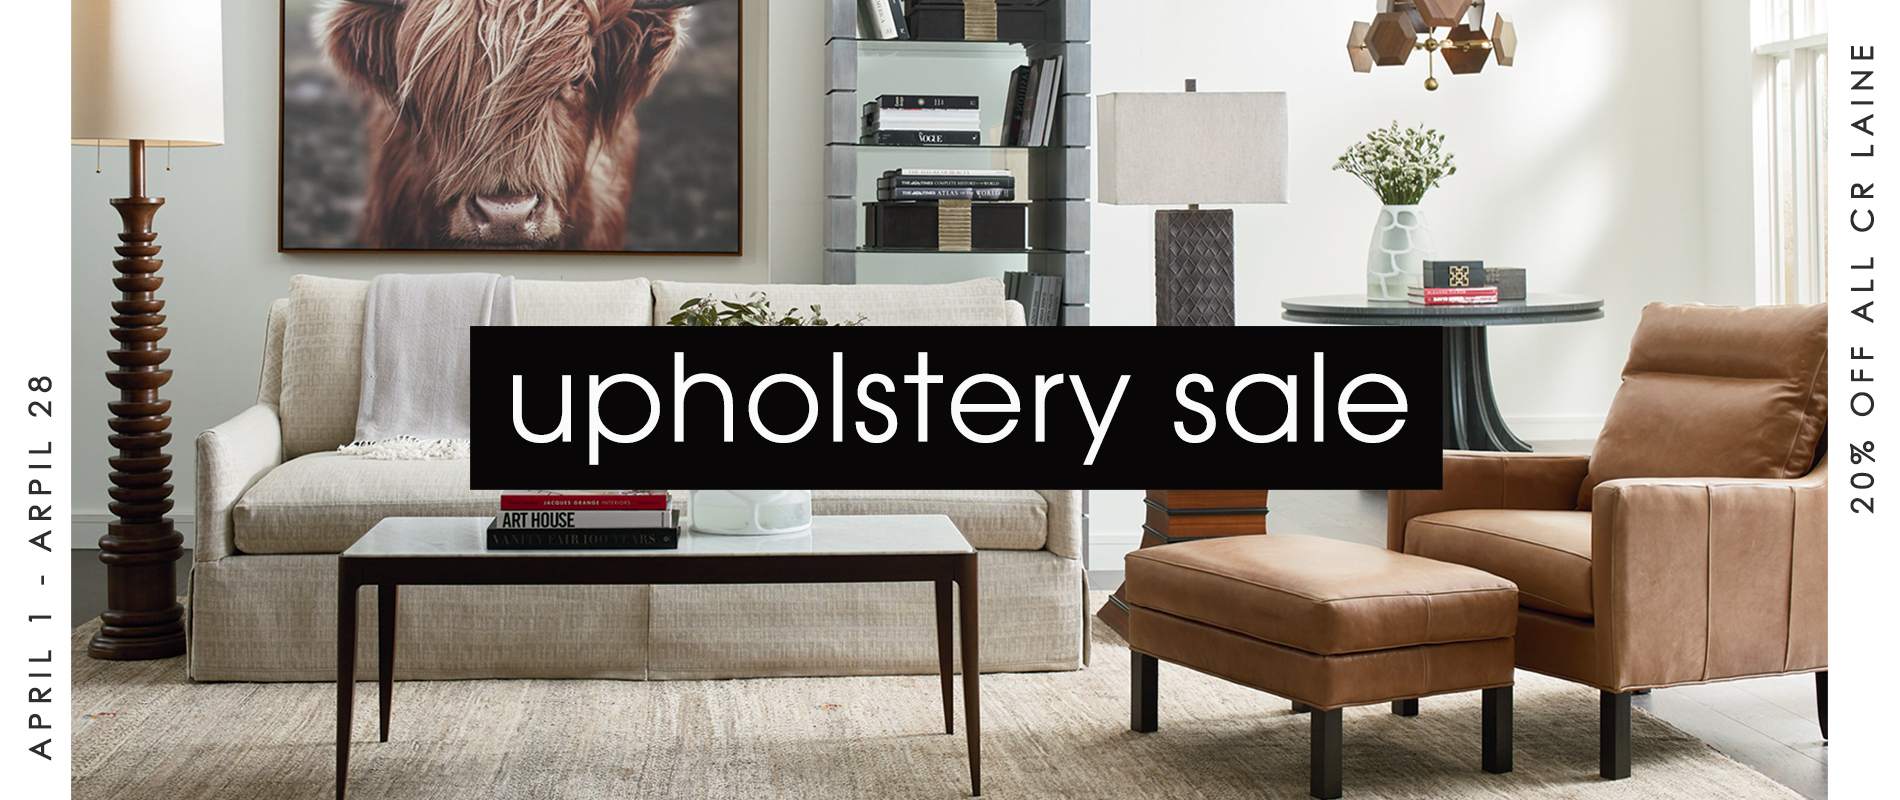 cr laine furniture upholstery sale